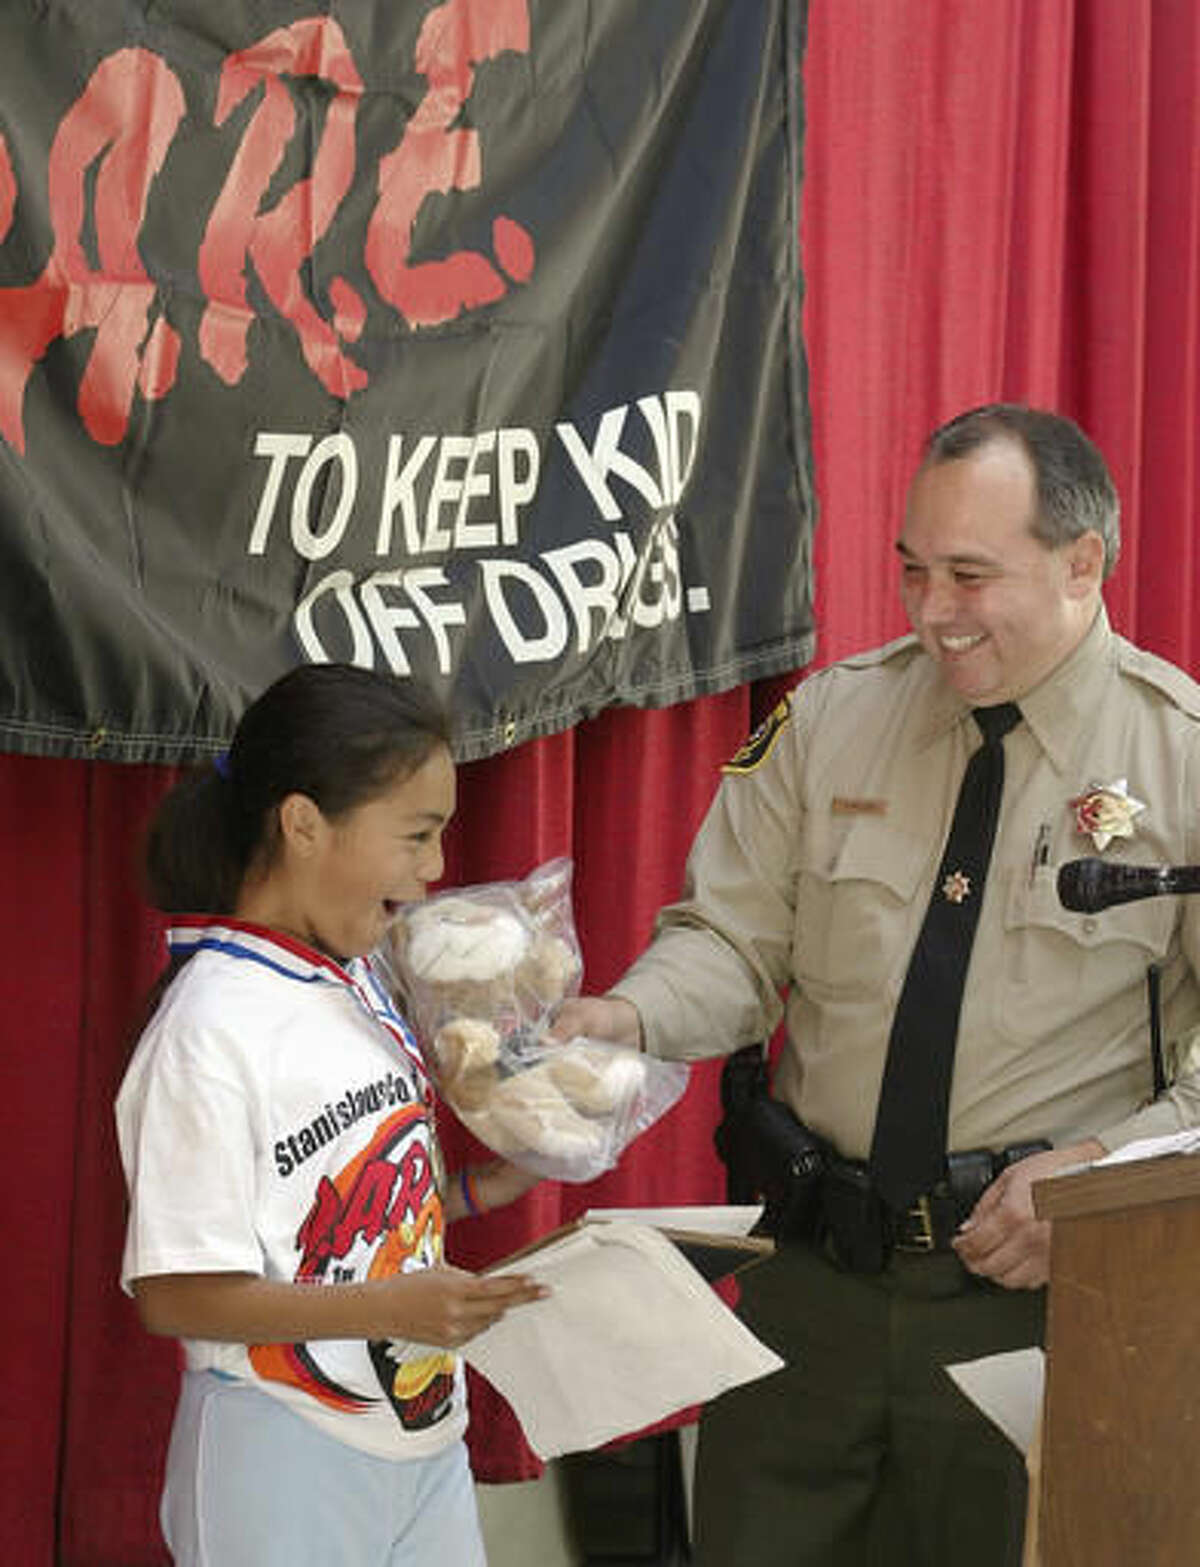 FILE - In this April 30, 2004, file photo, Stanislaus County Sheriff's Deputy Dennis Wallace gives an award to Karissa Toves during Hart Ransom School's graduation program for the DARE program in Modesto, Calif. Wallace, a 20-year-veteran, was fatally shot at point-blank range Sunday, Nov. 13, 2016, as he checked on a report of a suspicious van parked near a fishing access spot outside the city of Hughson, about 10 miles southeast of Modesto, Stanislaus County Sheriff Adam Christianson said. (Marty Bicek/The Modesto Bee via AP, File)